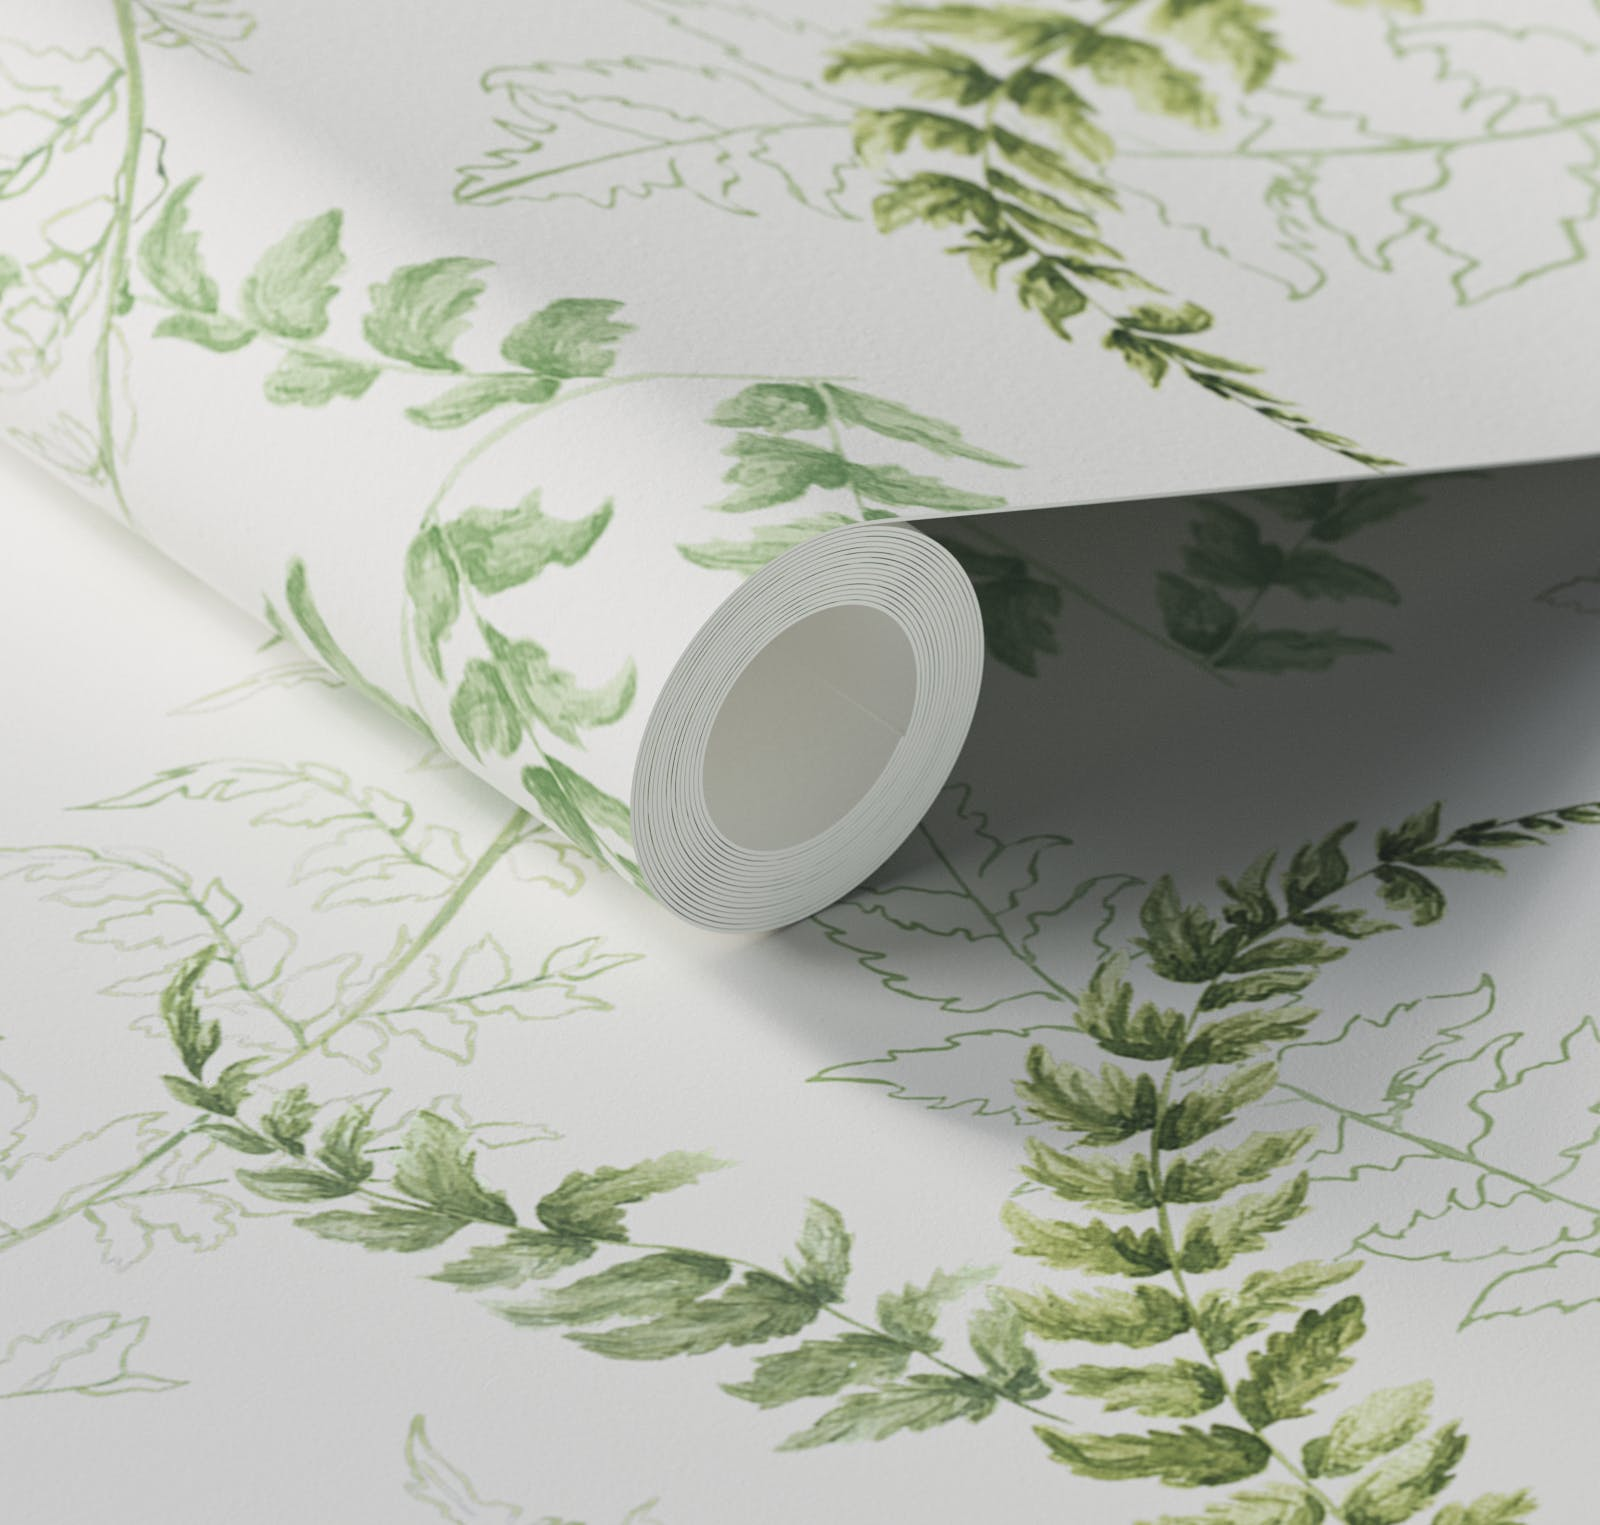 Close up of Lick x Jenna Hewitt Fern 01 green botanical wallpaper